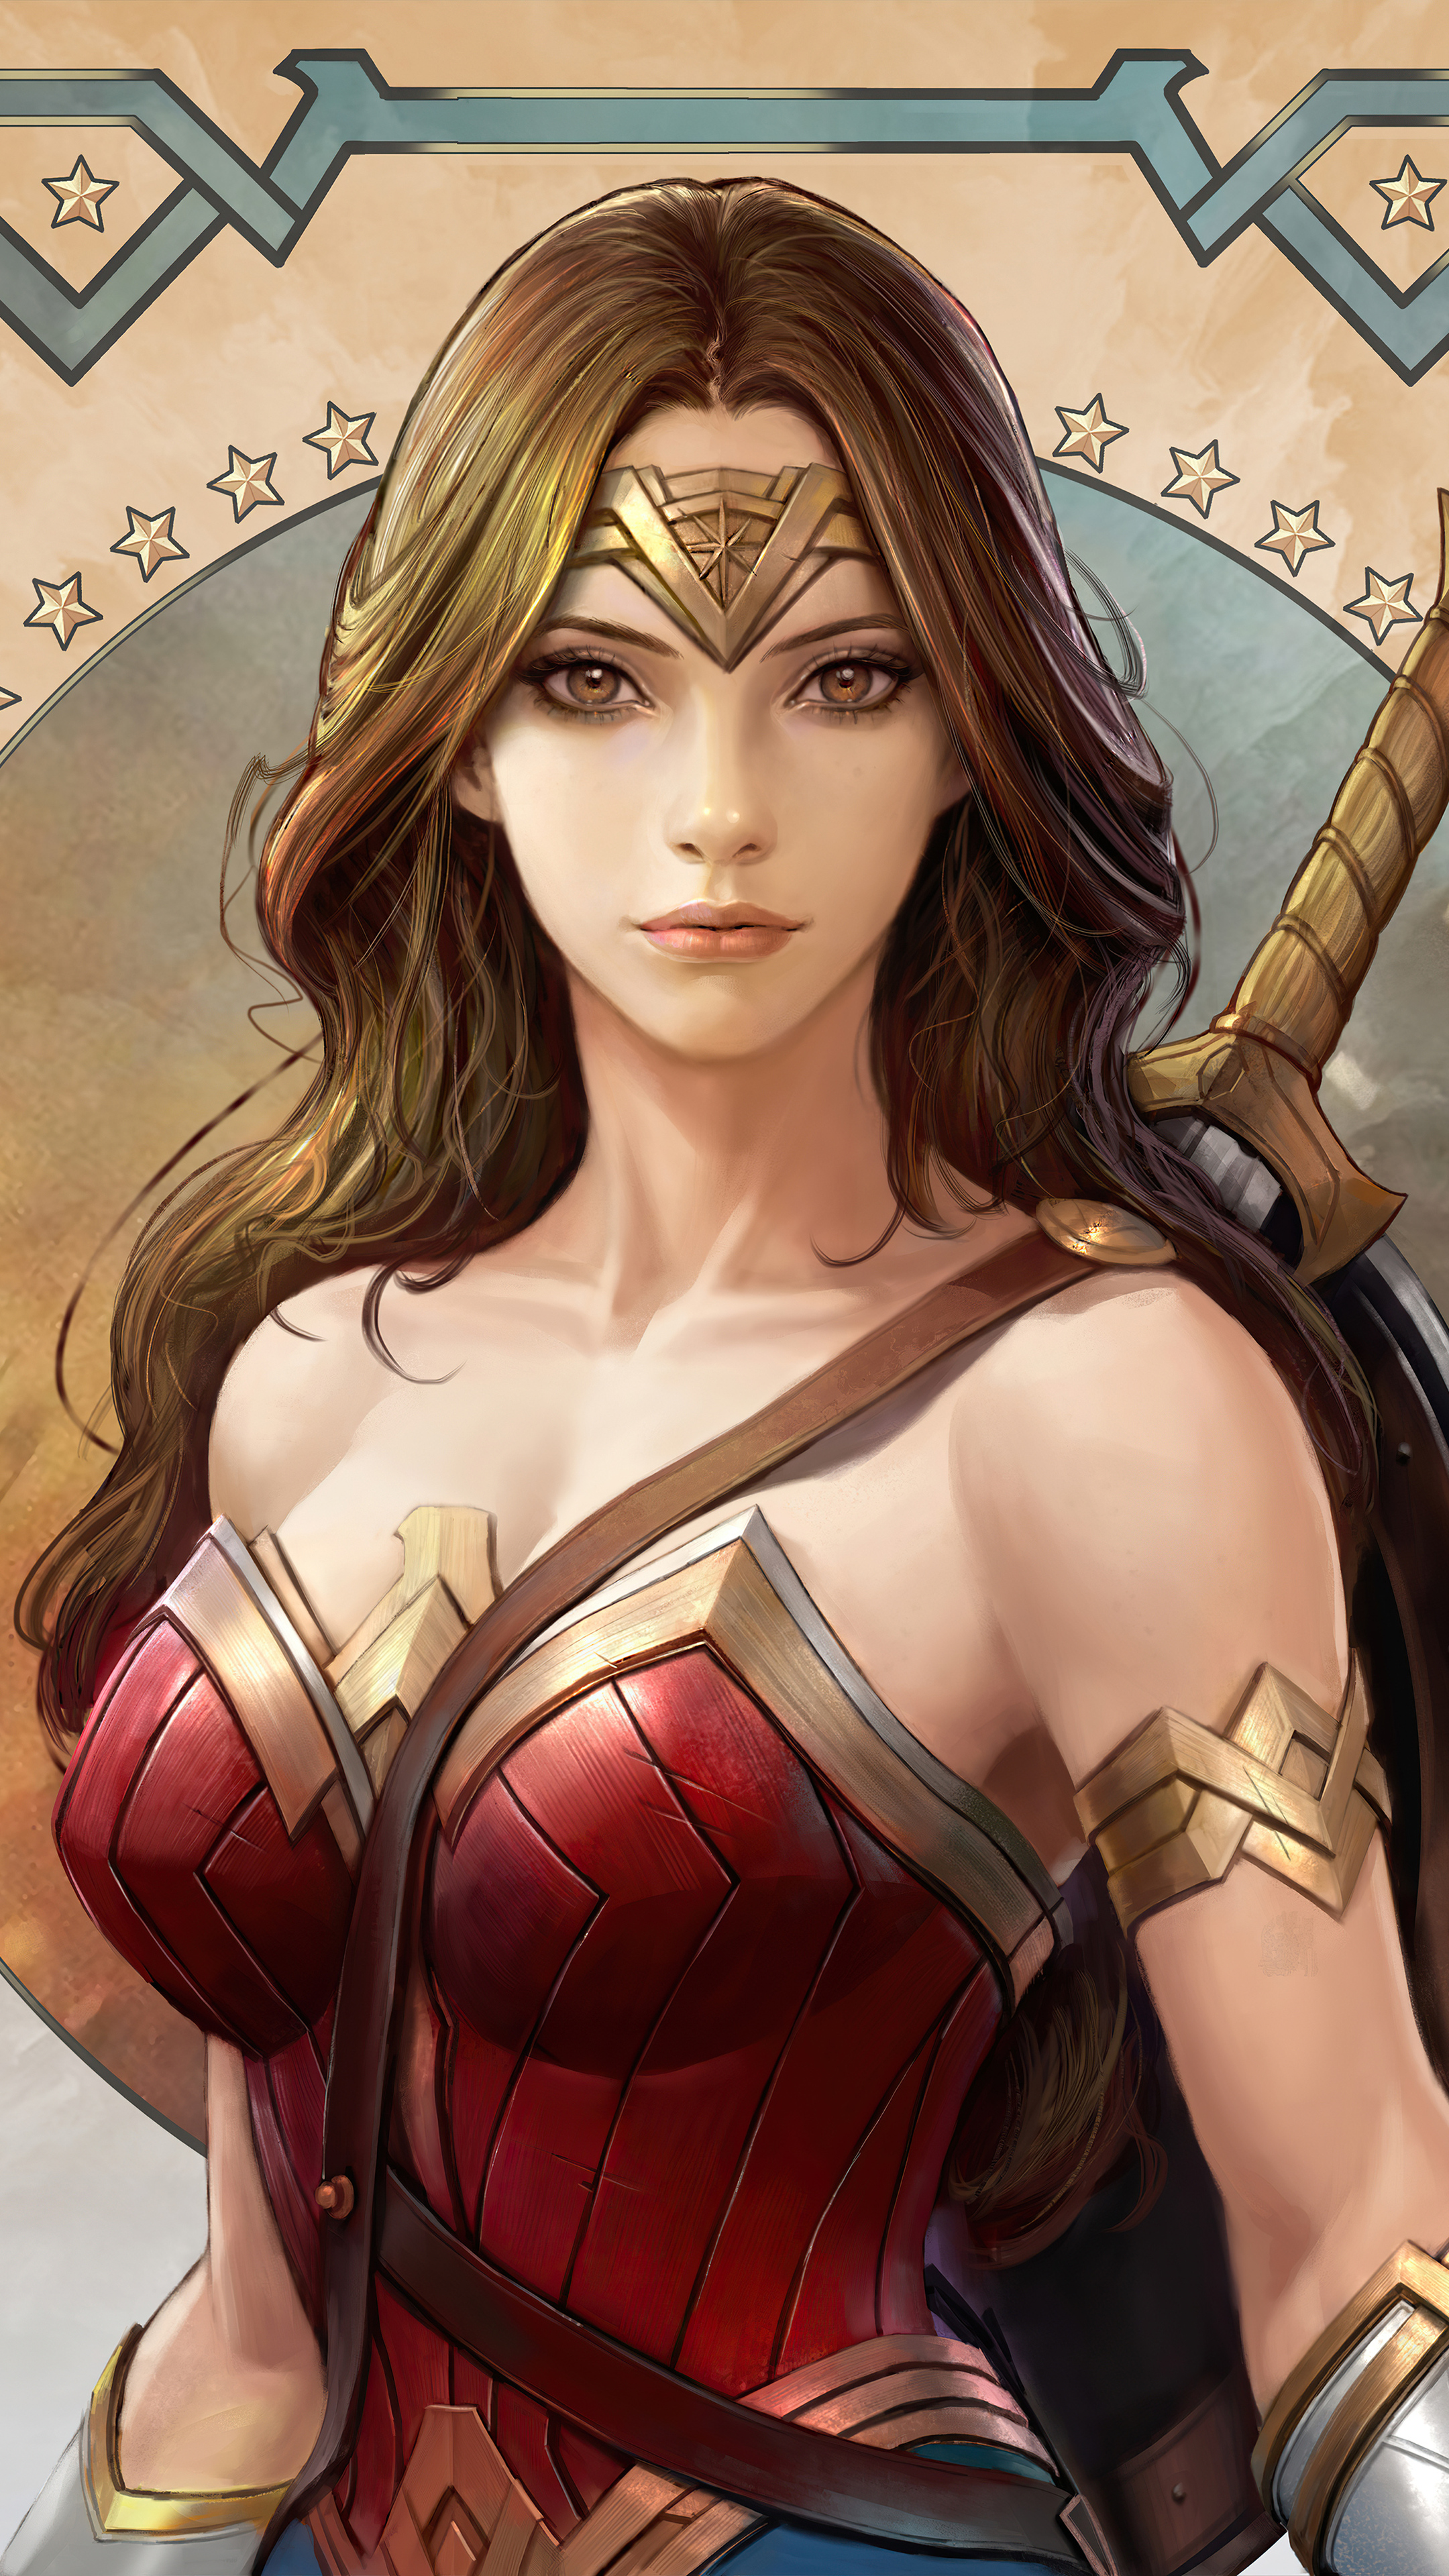 wonder-woman-hero-art-4k-fv.jpg